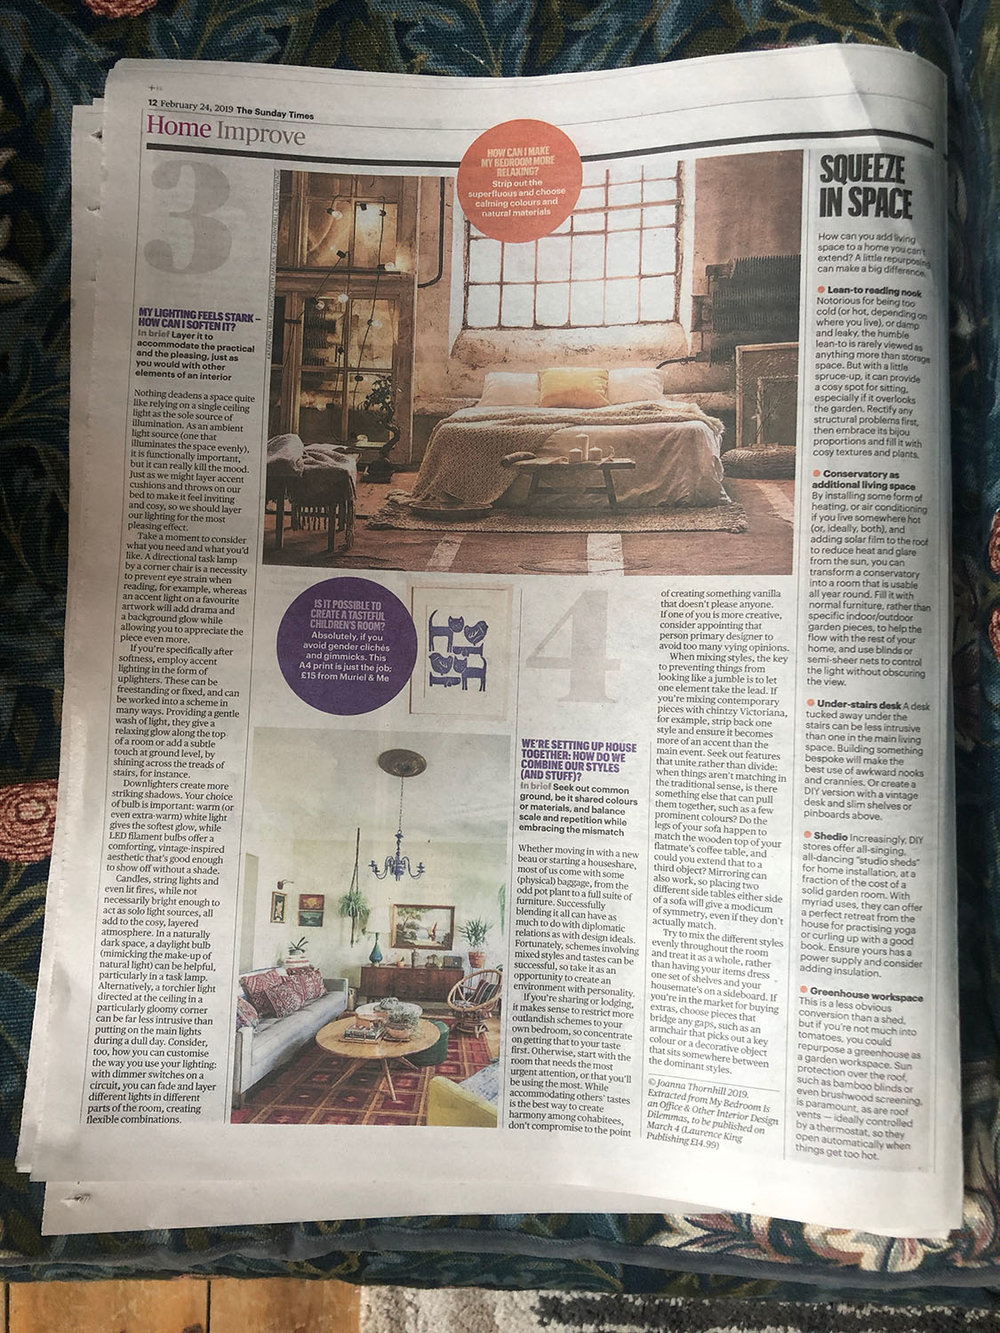 Sunday Times Home featuring My Bedroom Is an Office by Joanna Thornhill 24th Feb 2019 - P3 closer.jpg